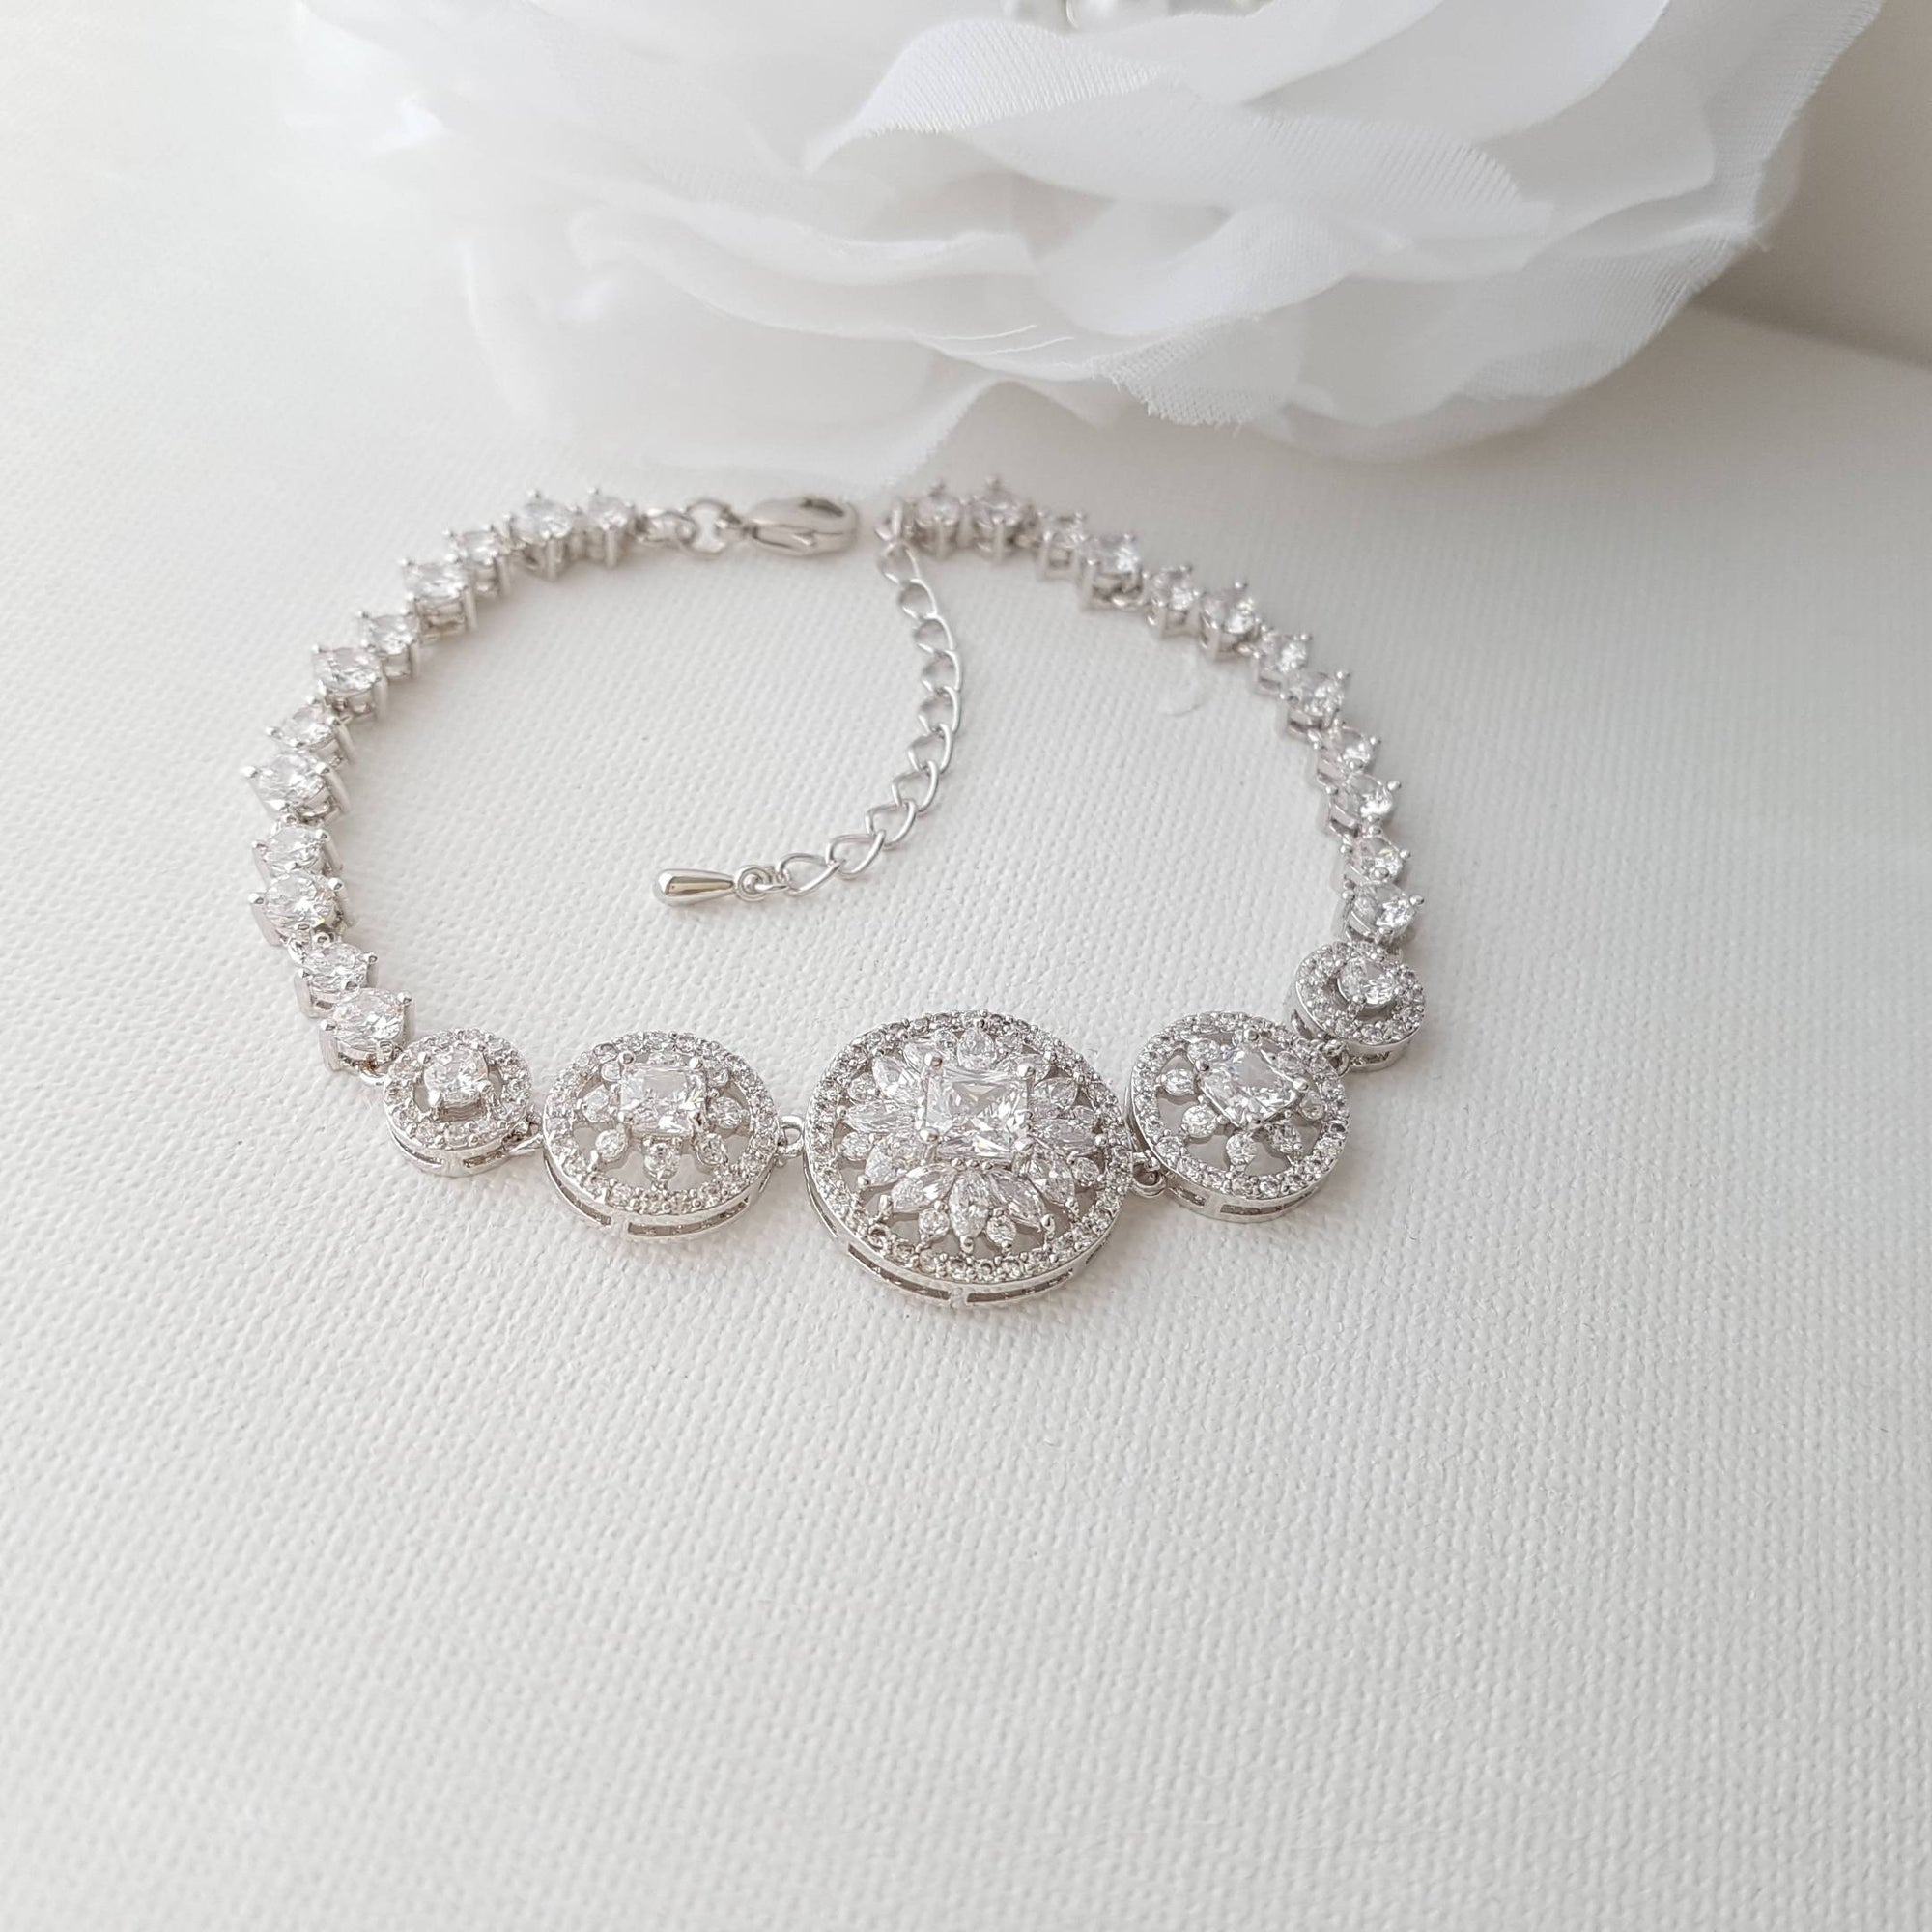 Bridal Bracelet, Round Wedding Bracelet, Crystal Wedding Bracelet, Cubic Zirconia Bracelet, Halo Style, Bridal Jewelry, Adonia - PoetryDesigns